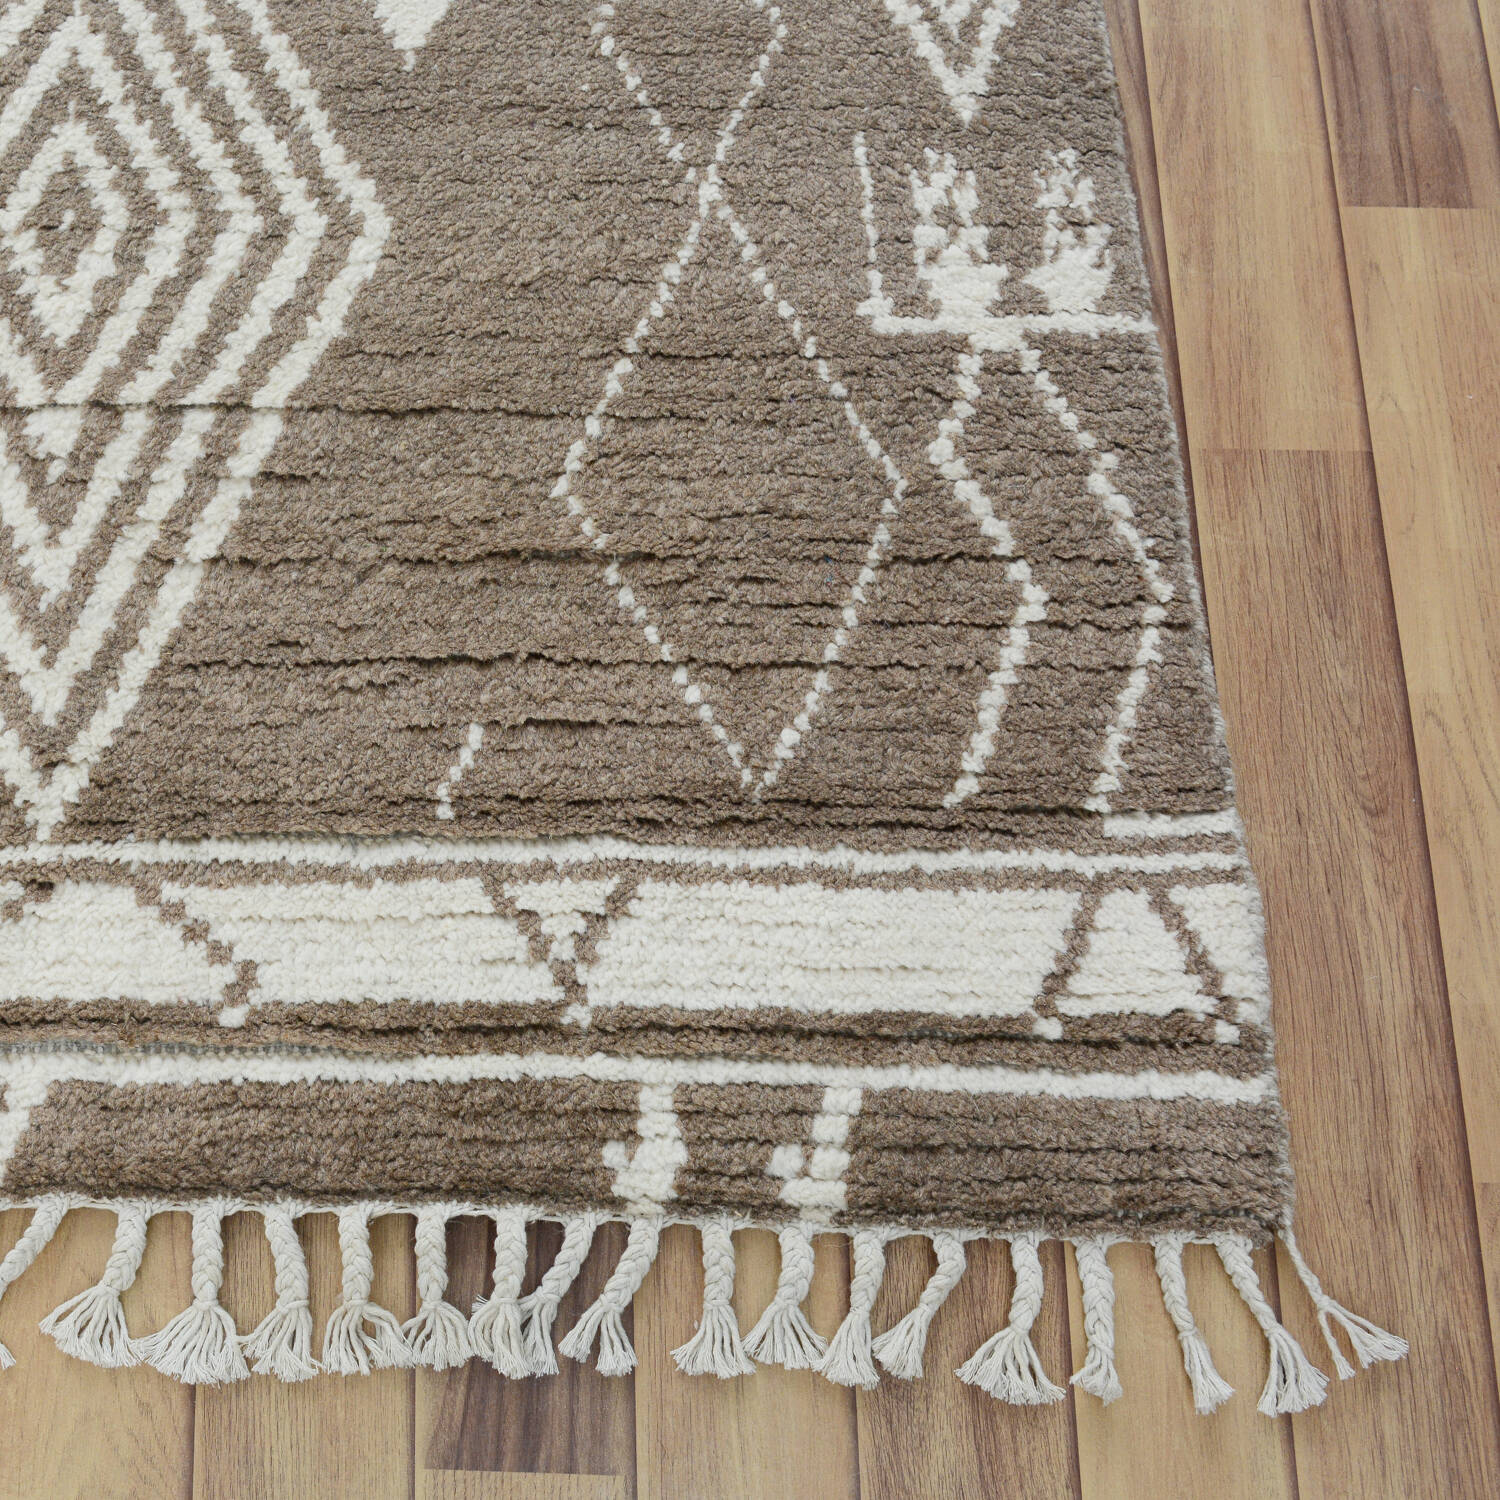 South-Western Moroccan Tribal Area Rug 8x10 image 5